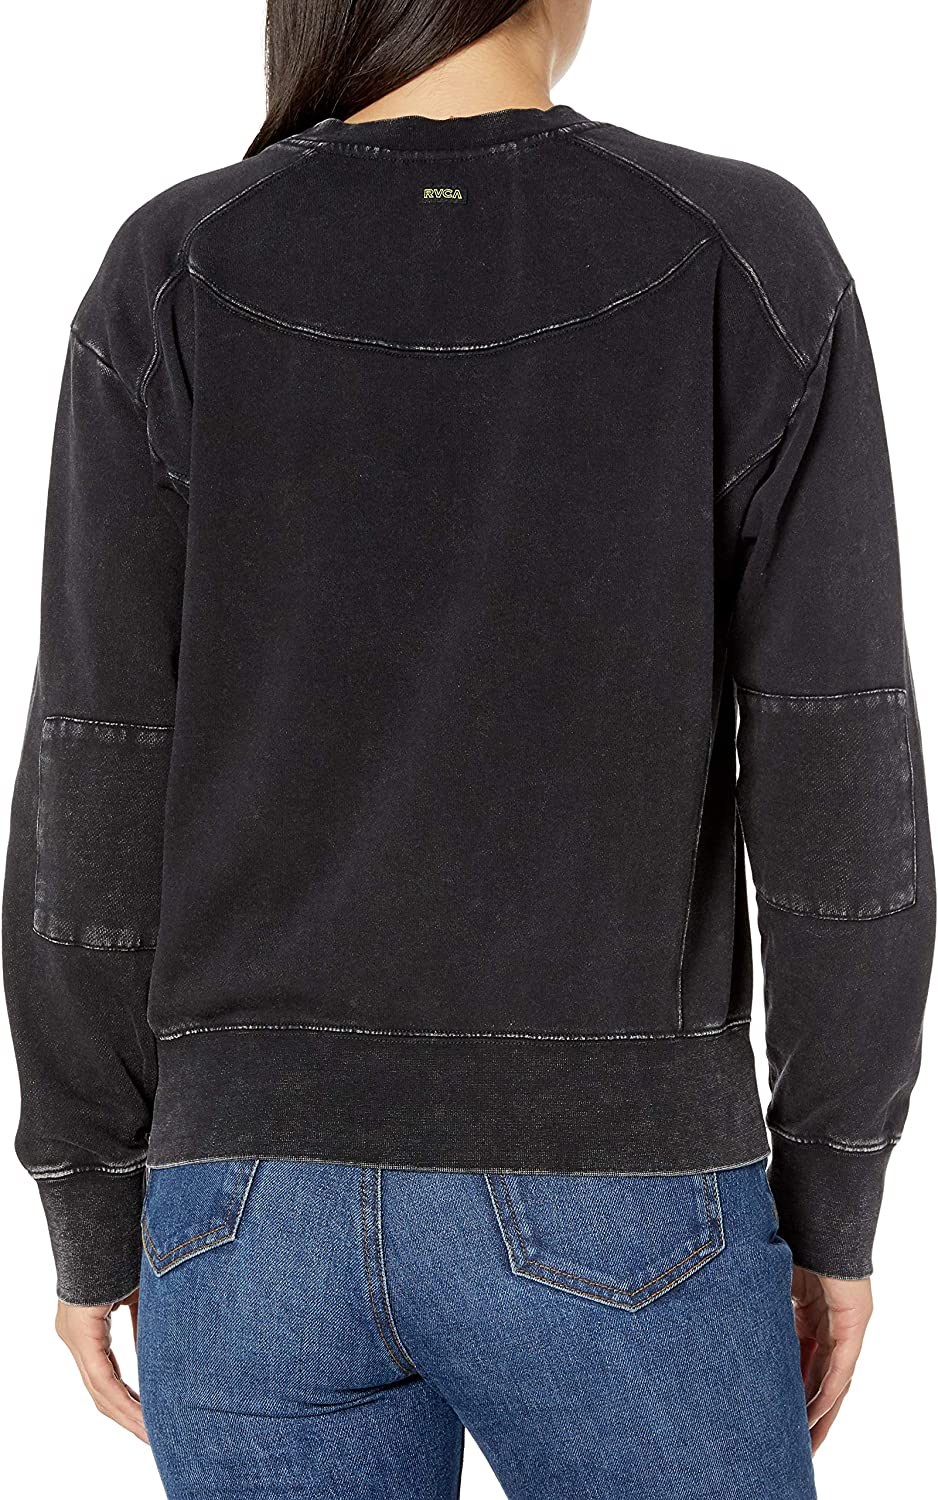 RVCA Womens Mended Pullover Crew Neck Sweatshirt